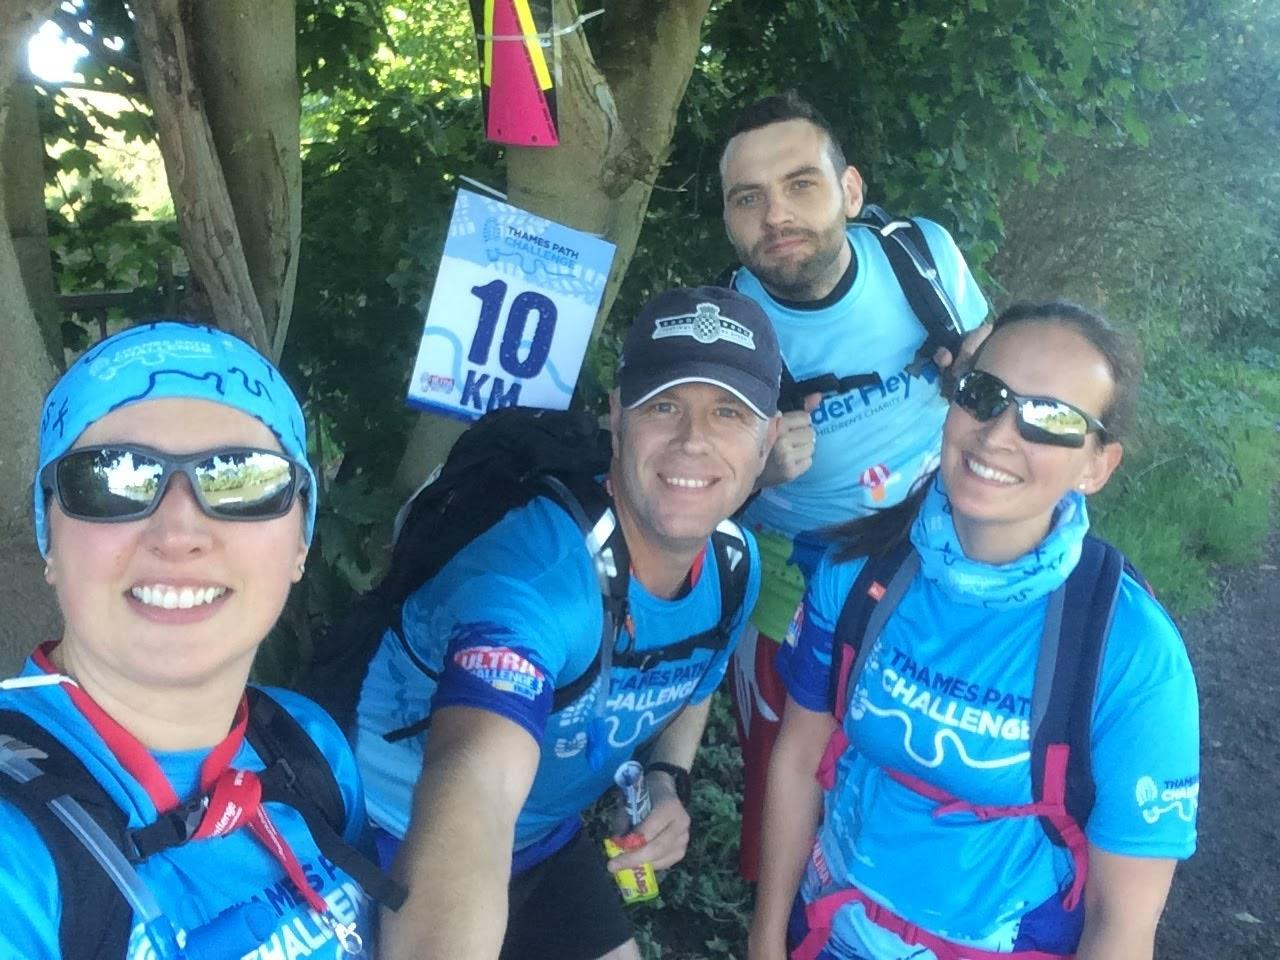 The 100 km Challenge - Paul's story